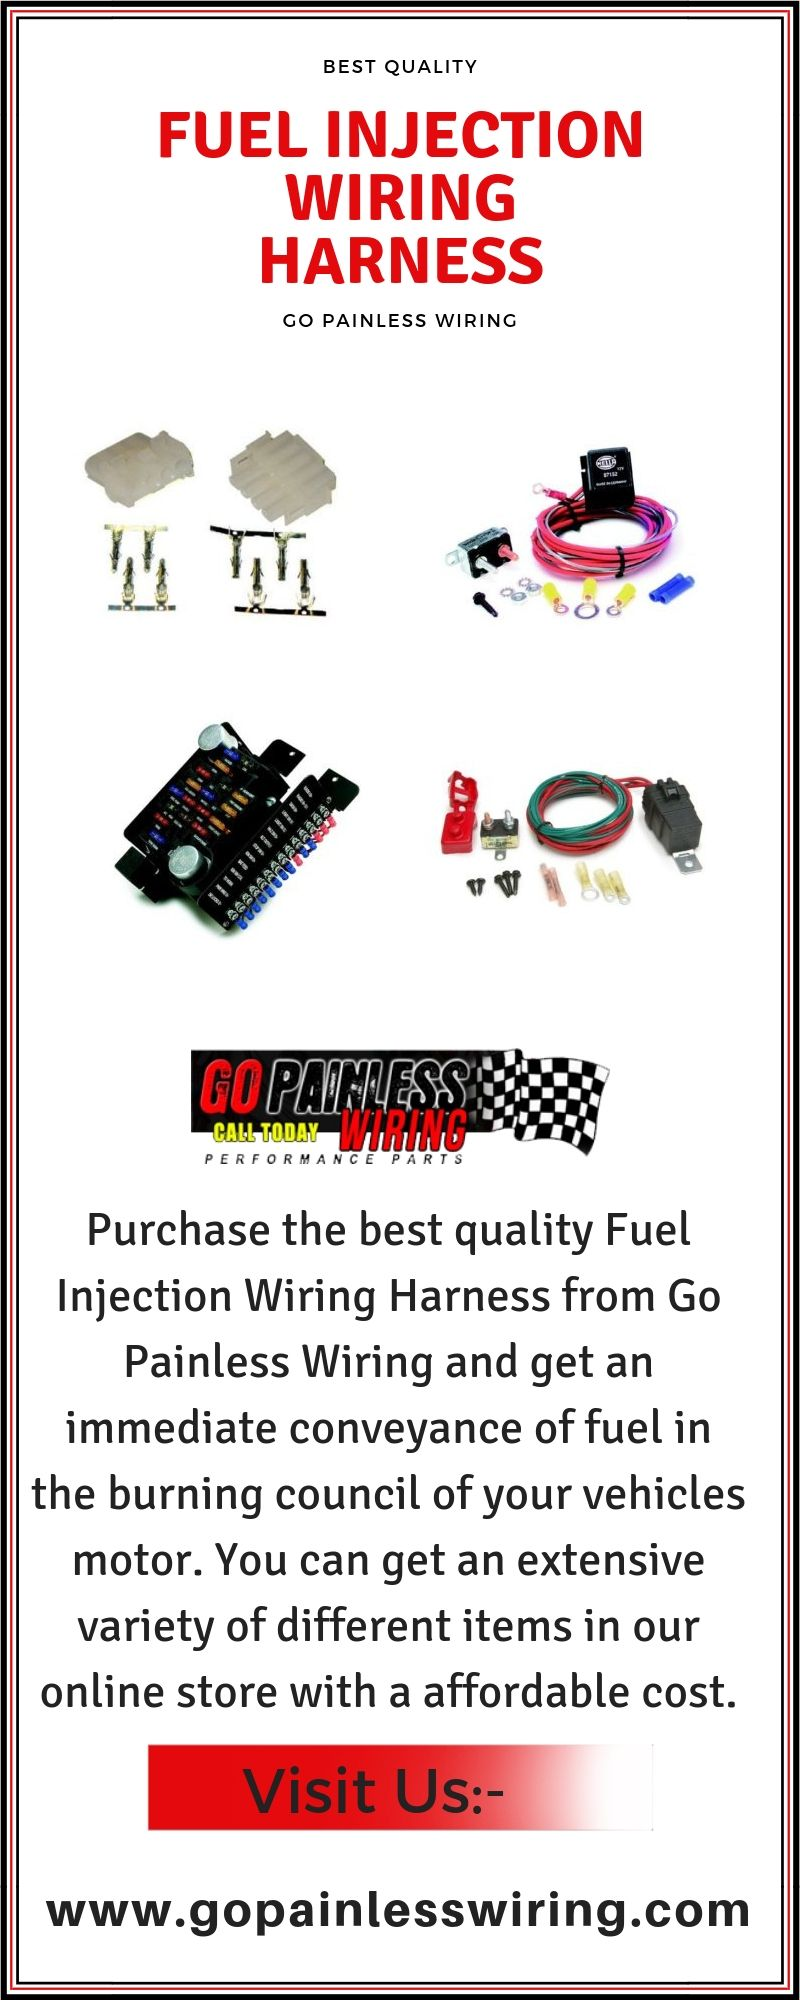 Purchase the best quality Fuel Injection Wiring Harness from